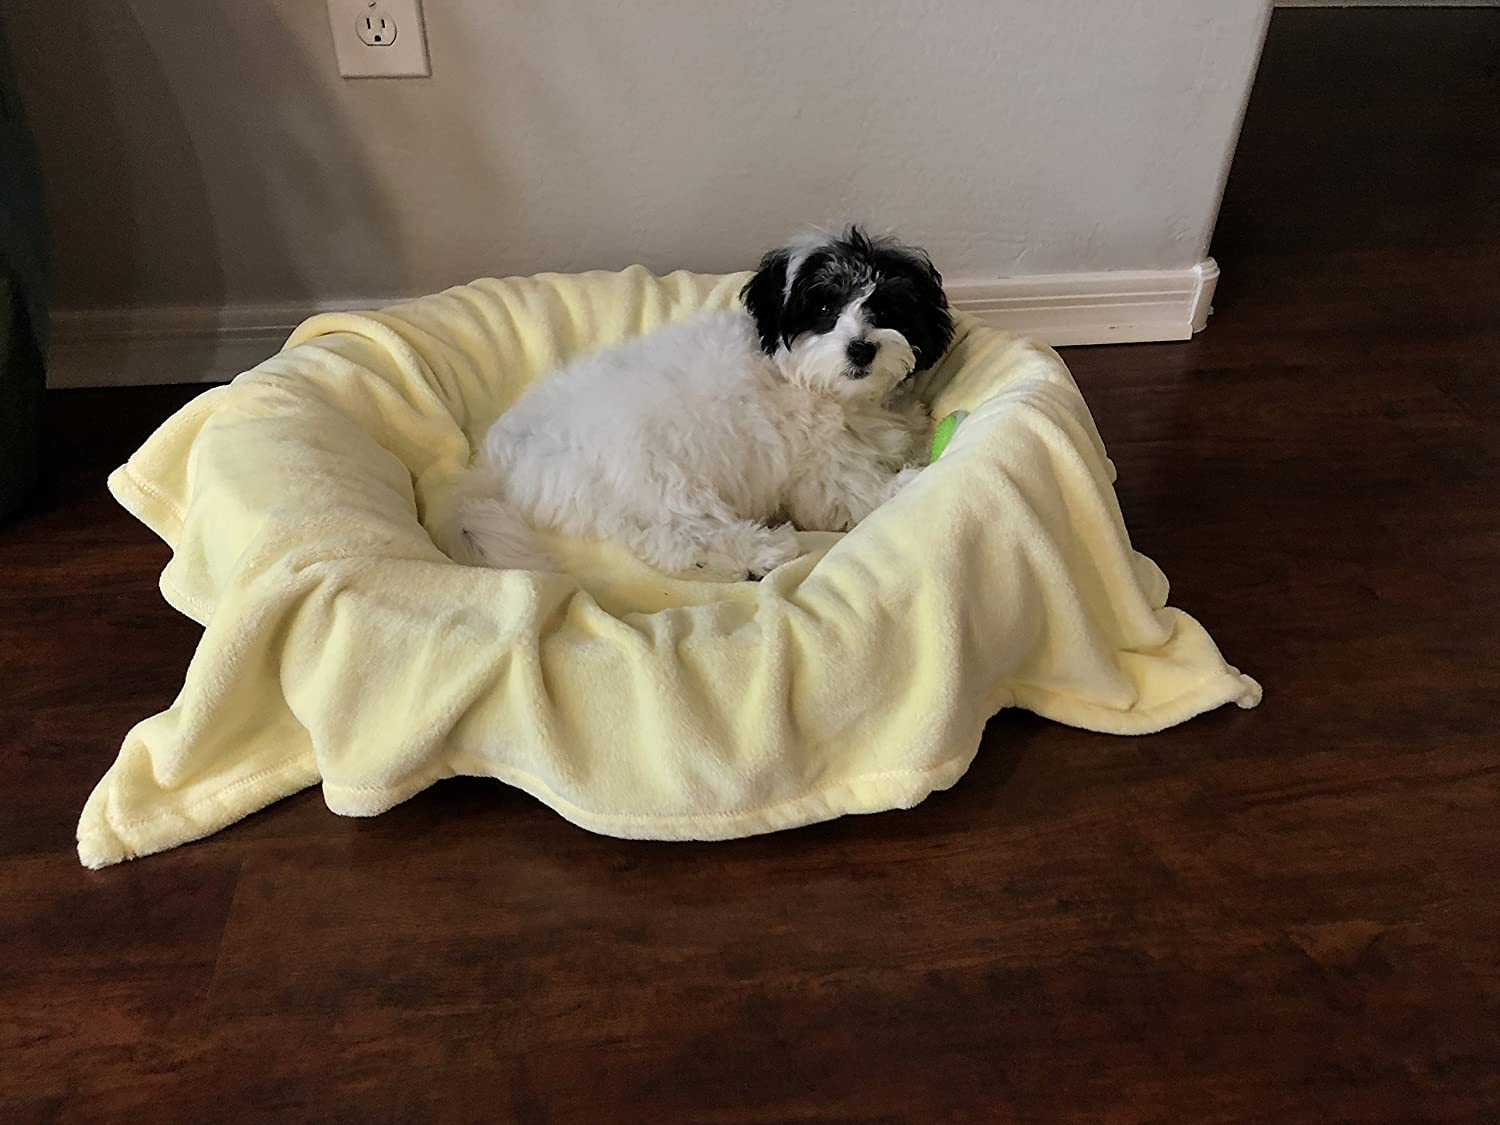 Puppies 30 x 40 Great for Pet Beds and Carriers Higher Comfort Super Soft Premium Pet Blankets for Small Dogs Cats /& Kittens